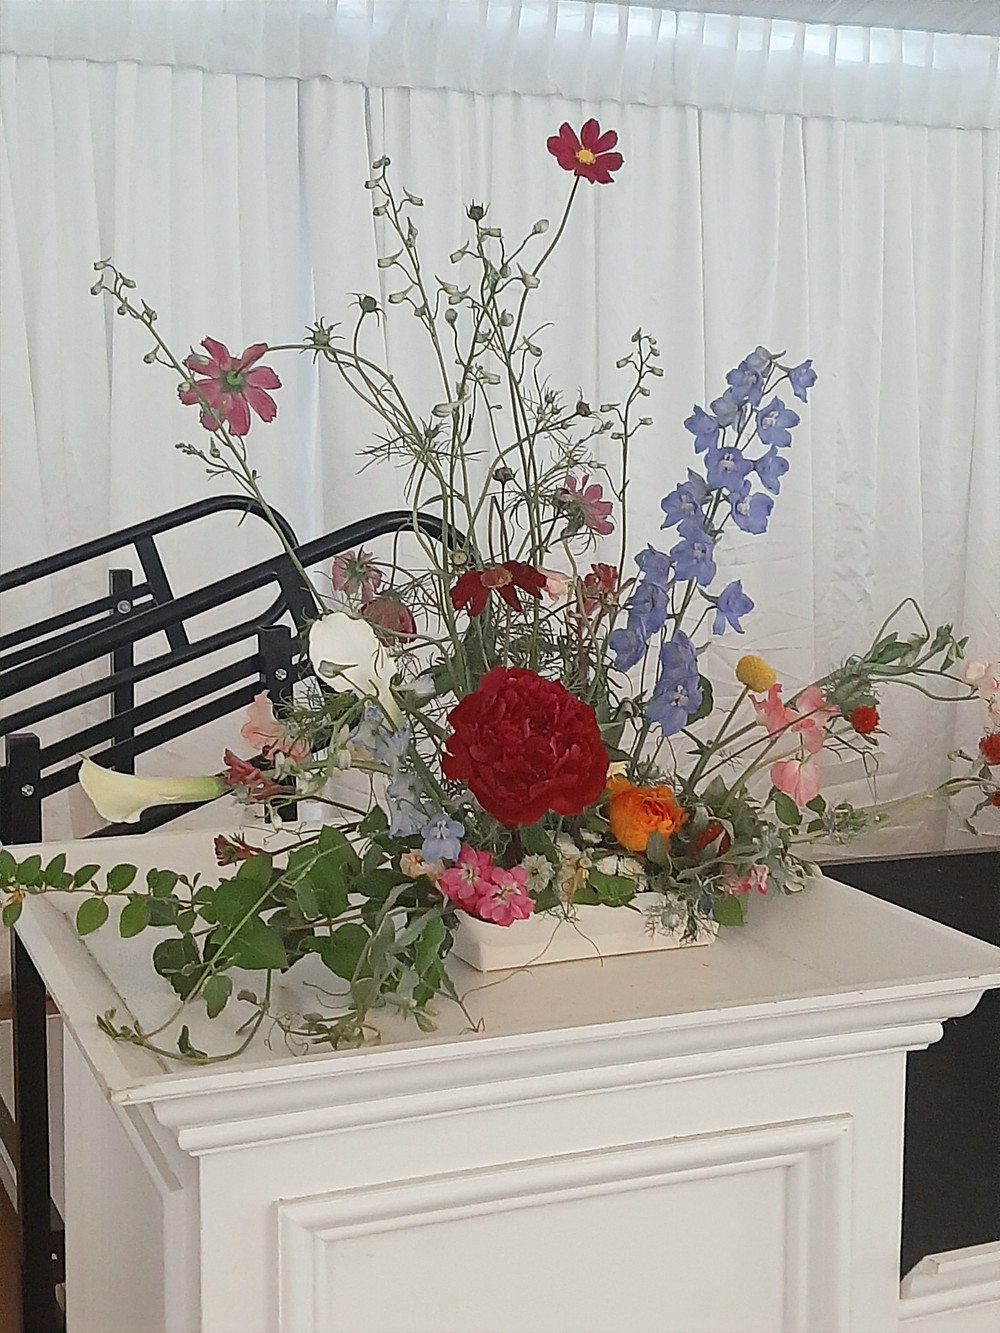 Wedding flowers at Meadowbrook Hall tent.  Music at wedding by Rondo String Quartet. www.RondoStringQuartet.com